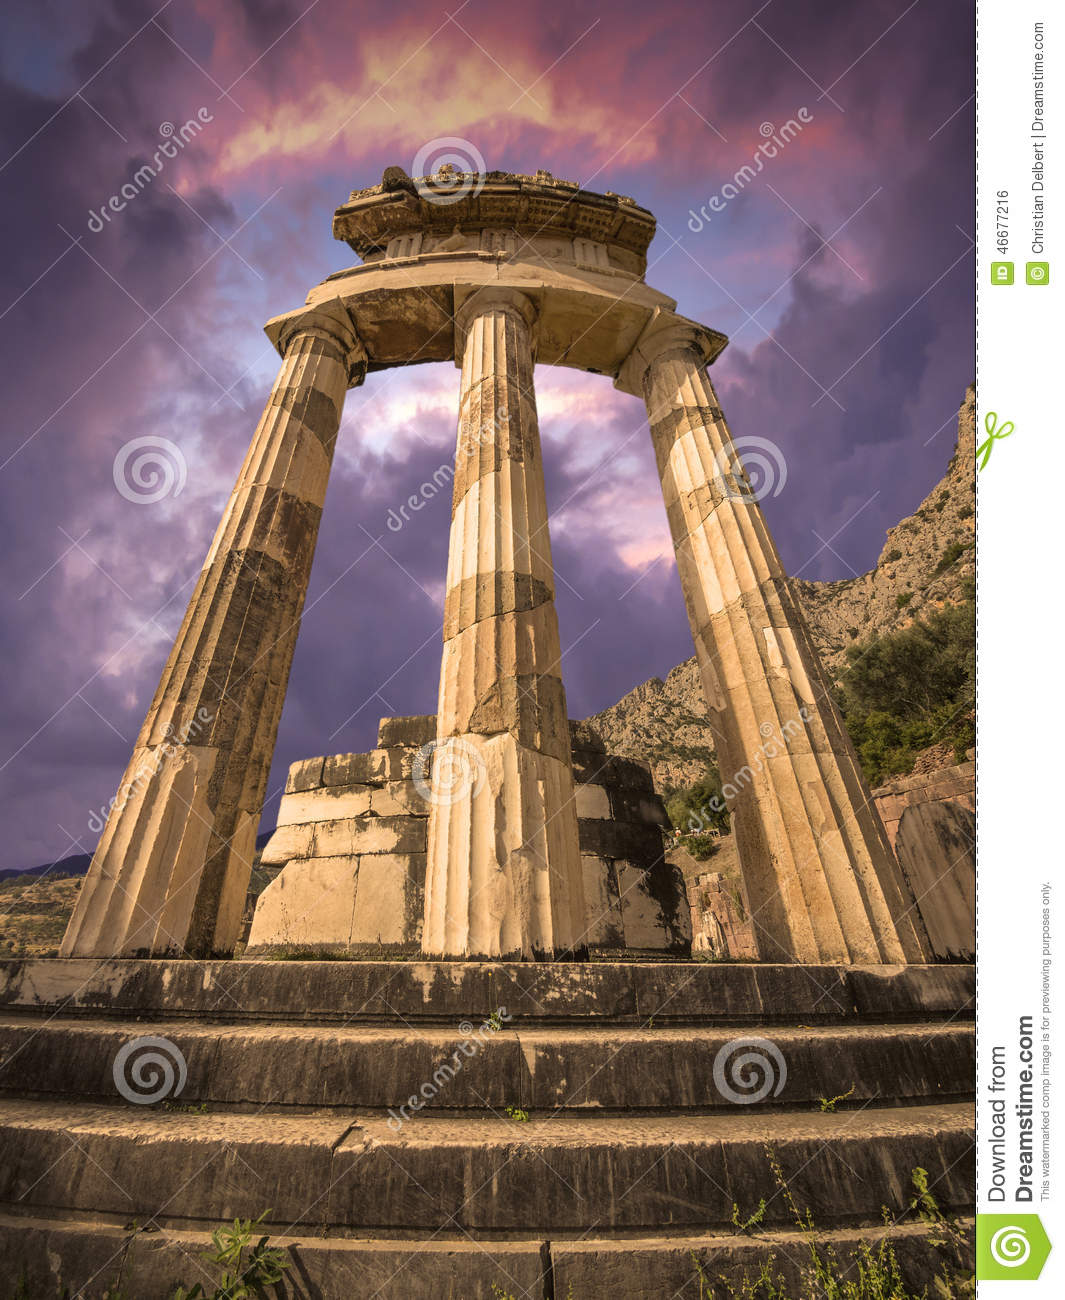 The Tholos, Delphi, Greece Stock Photo - Image: 46677216